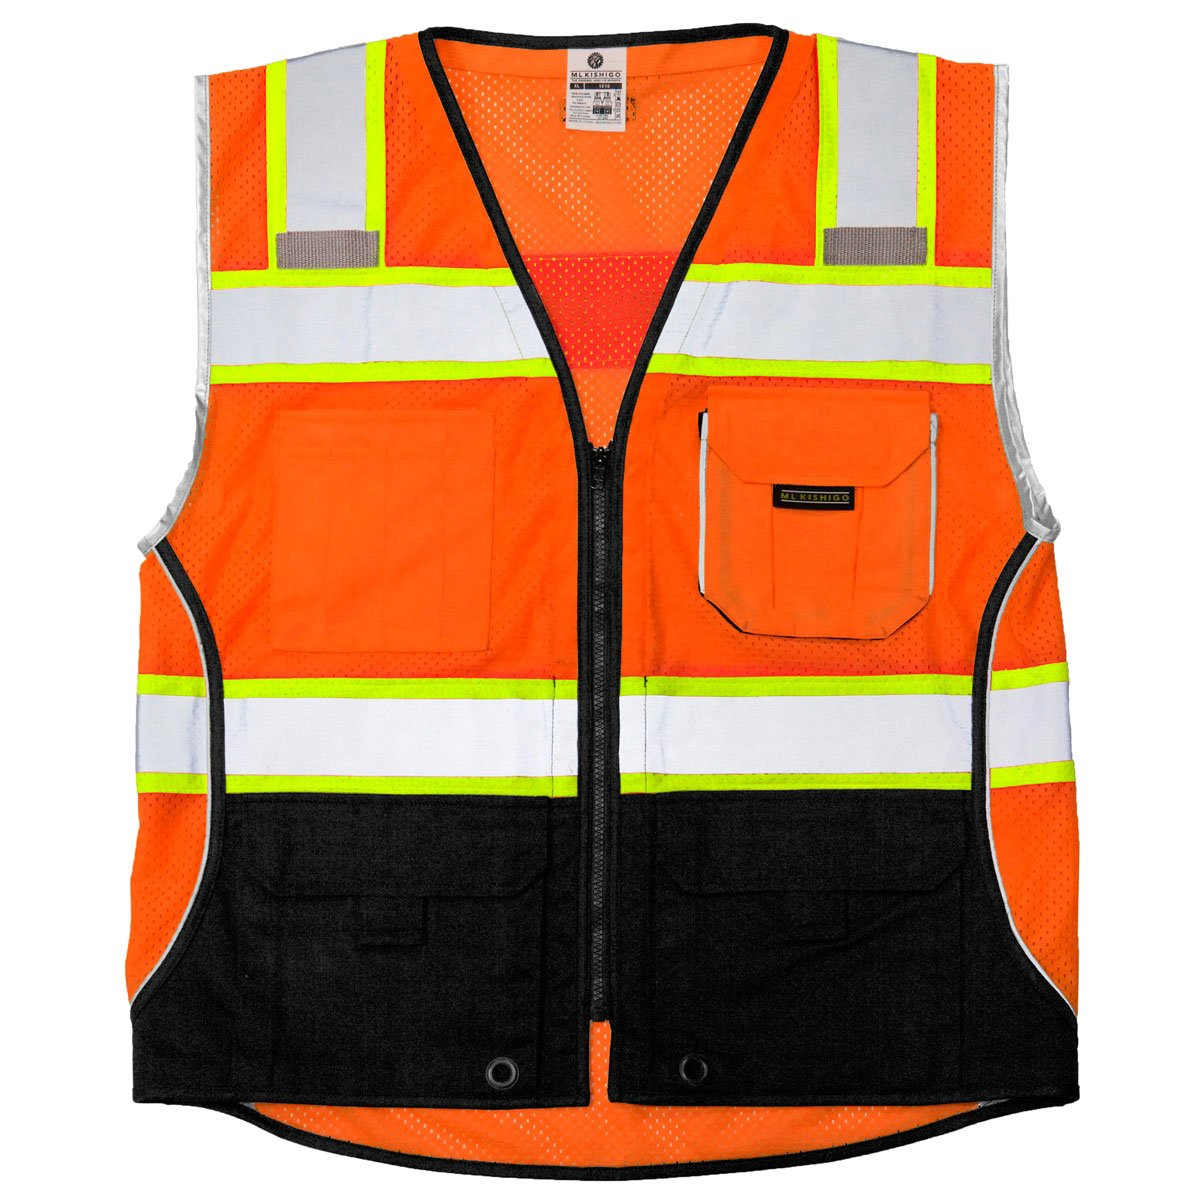 Safety Vest, M, Orange, Male by ML Kishigo